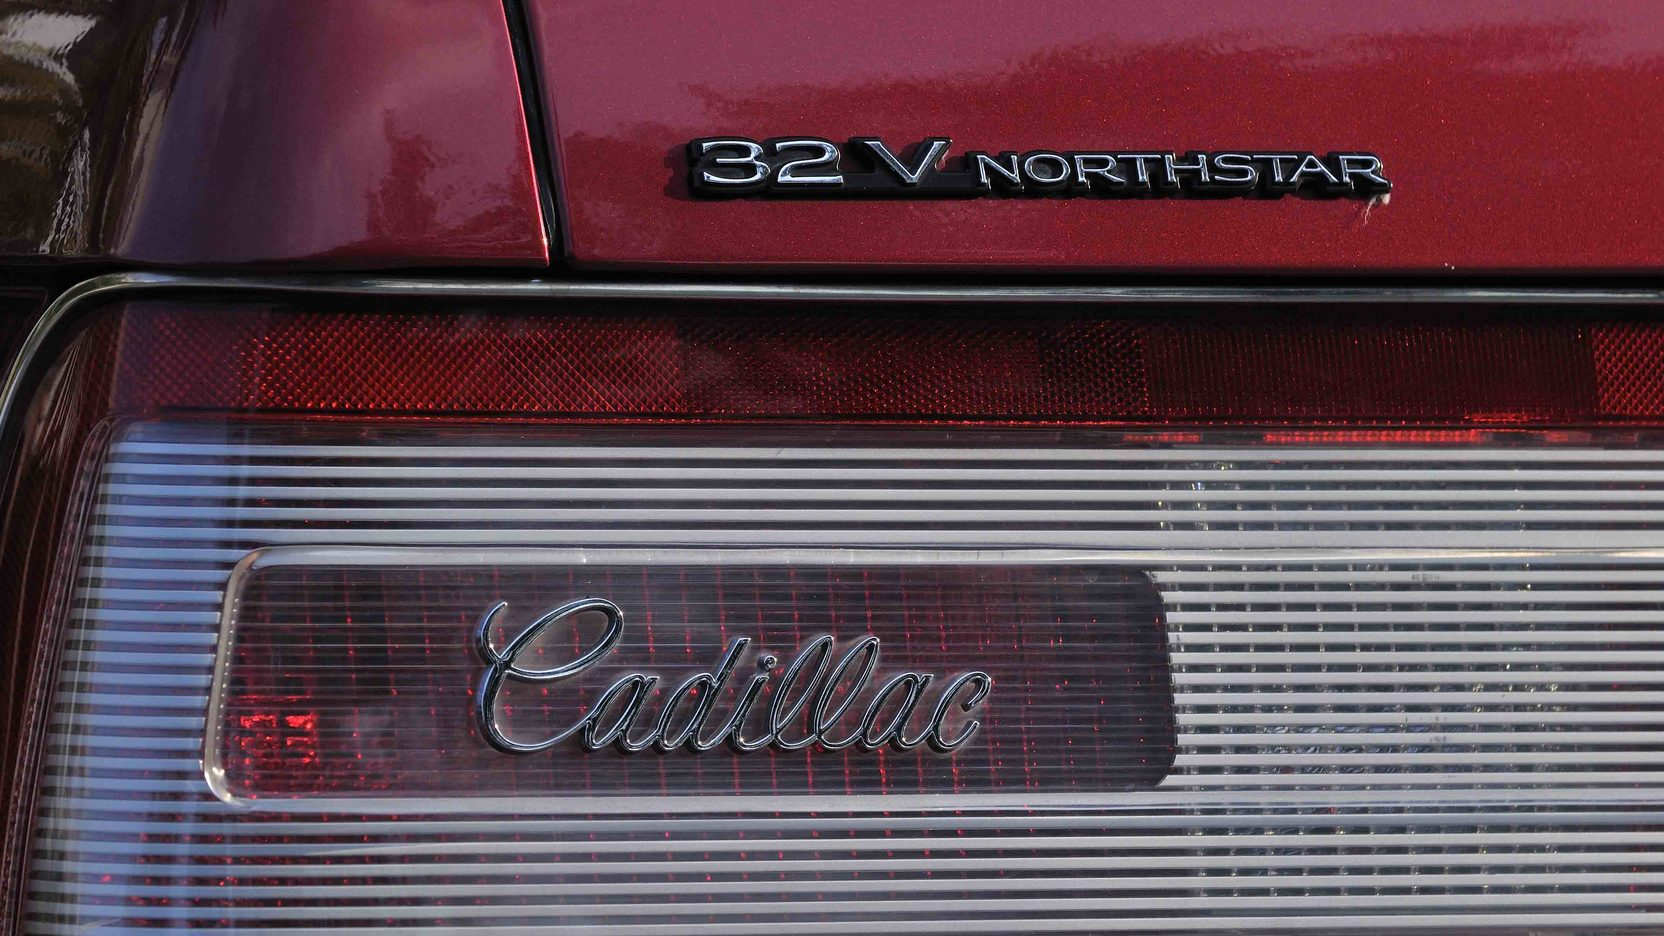 1993 Cadillac Allante northstar badge